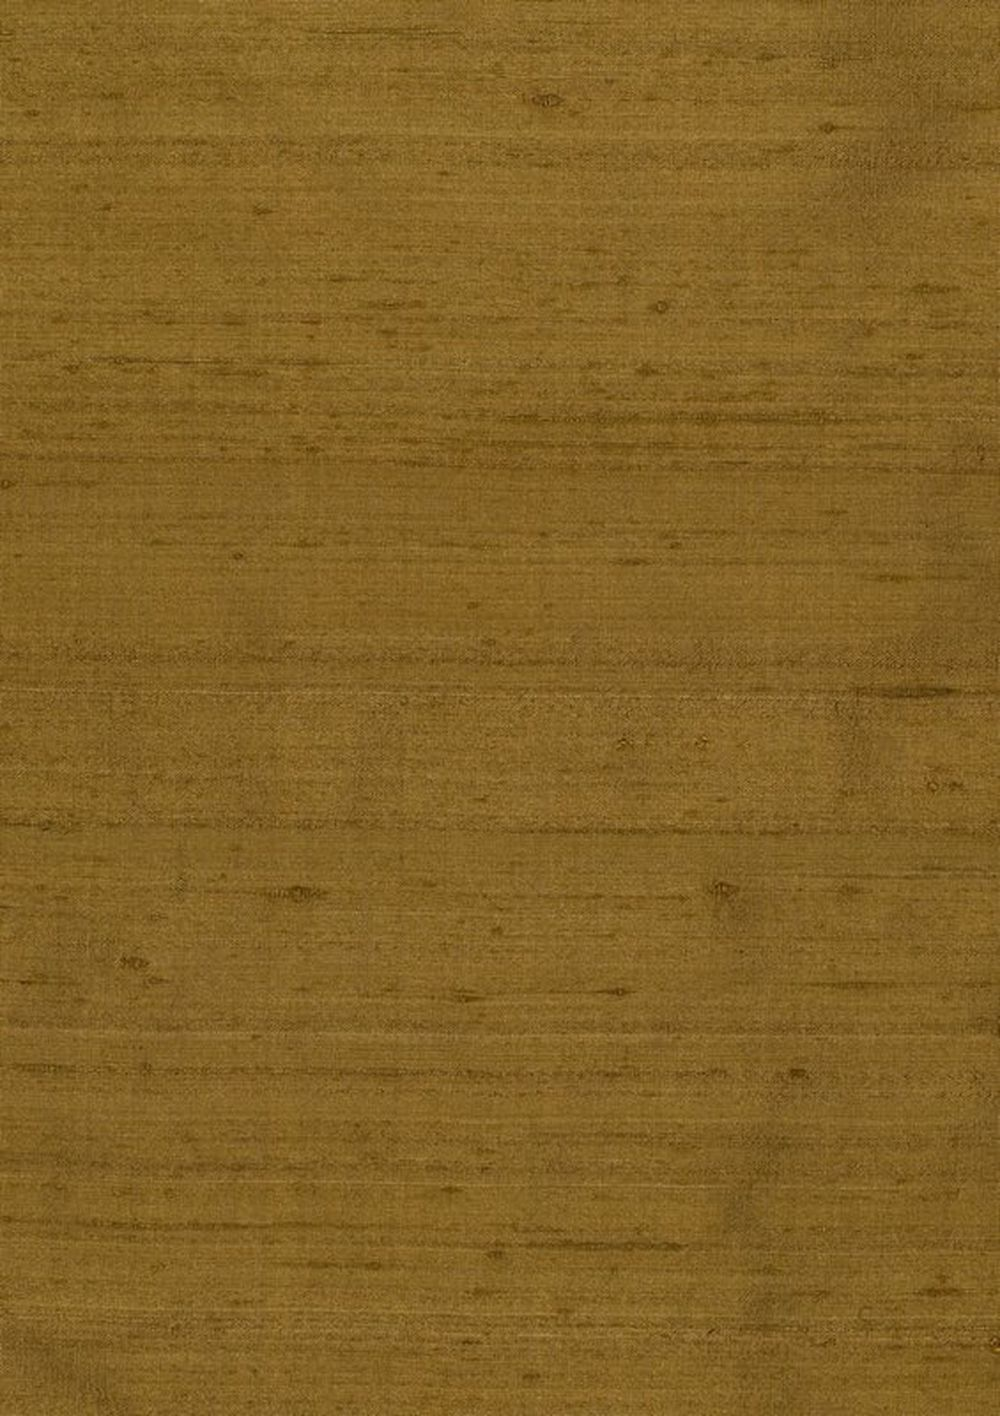 Photo of the fabric Indulgence Cinnamon-175 swatch by Zepel. Use for Curtains. Style of Plain